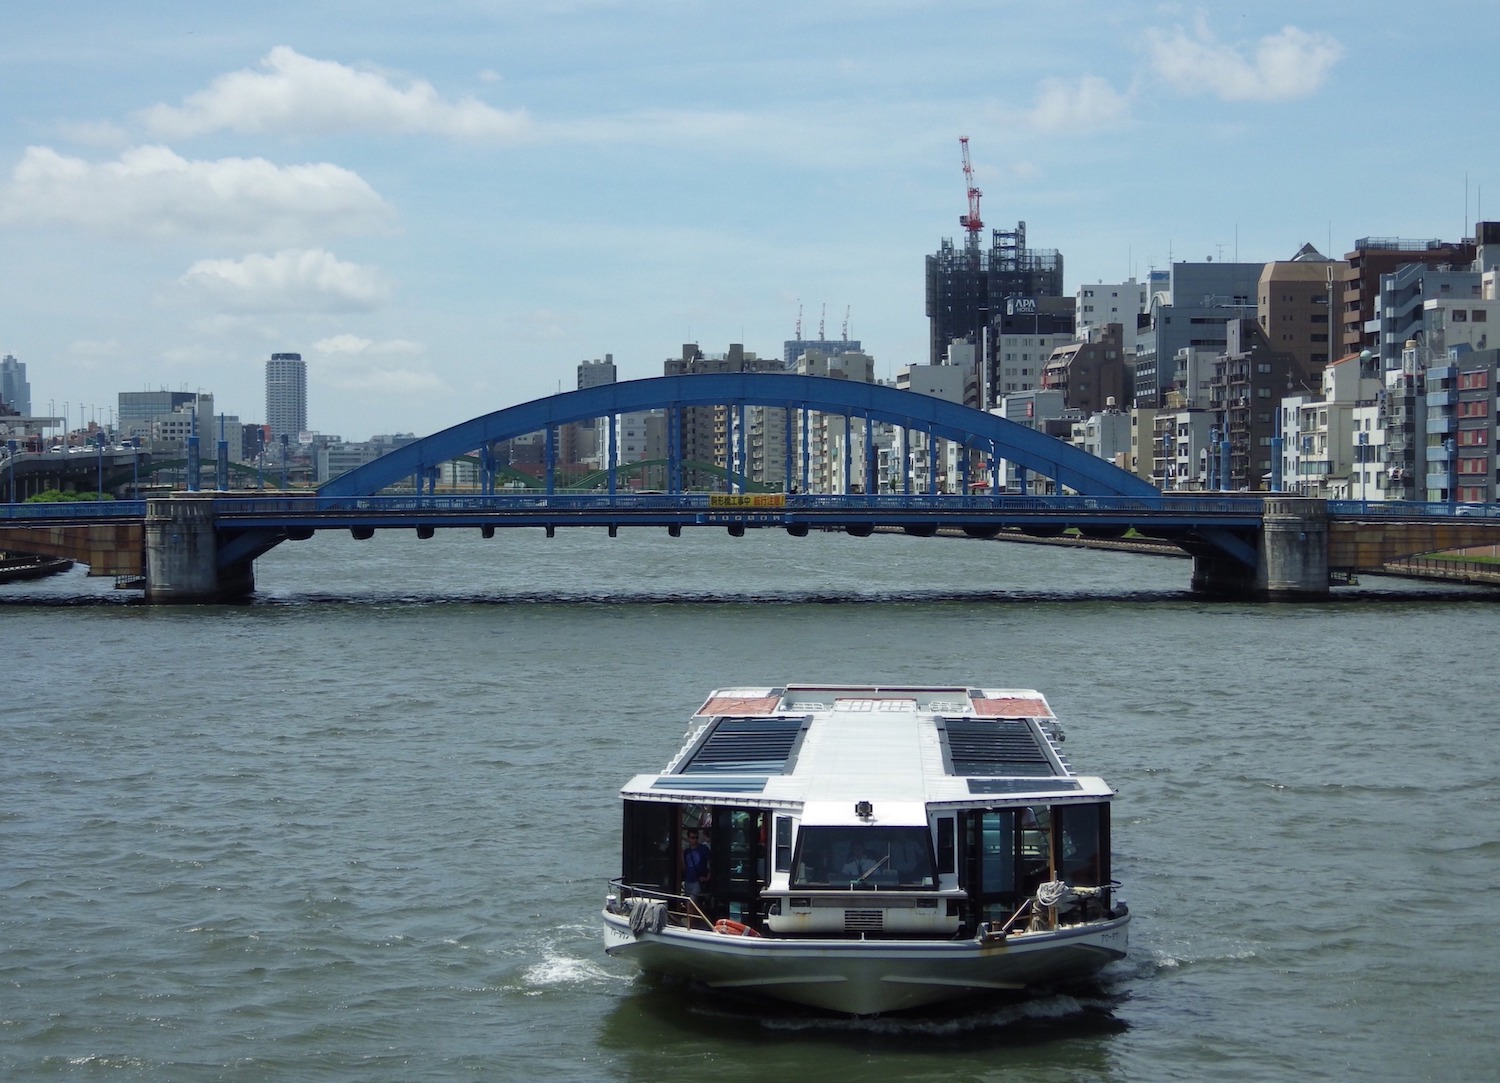 A water bus on the Sumida River, as seen from the Azuma Bridge, near Tokyo's Asakusa district.